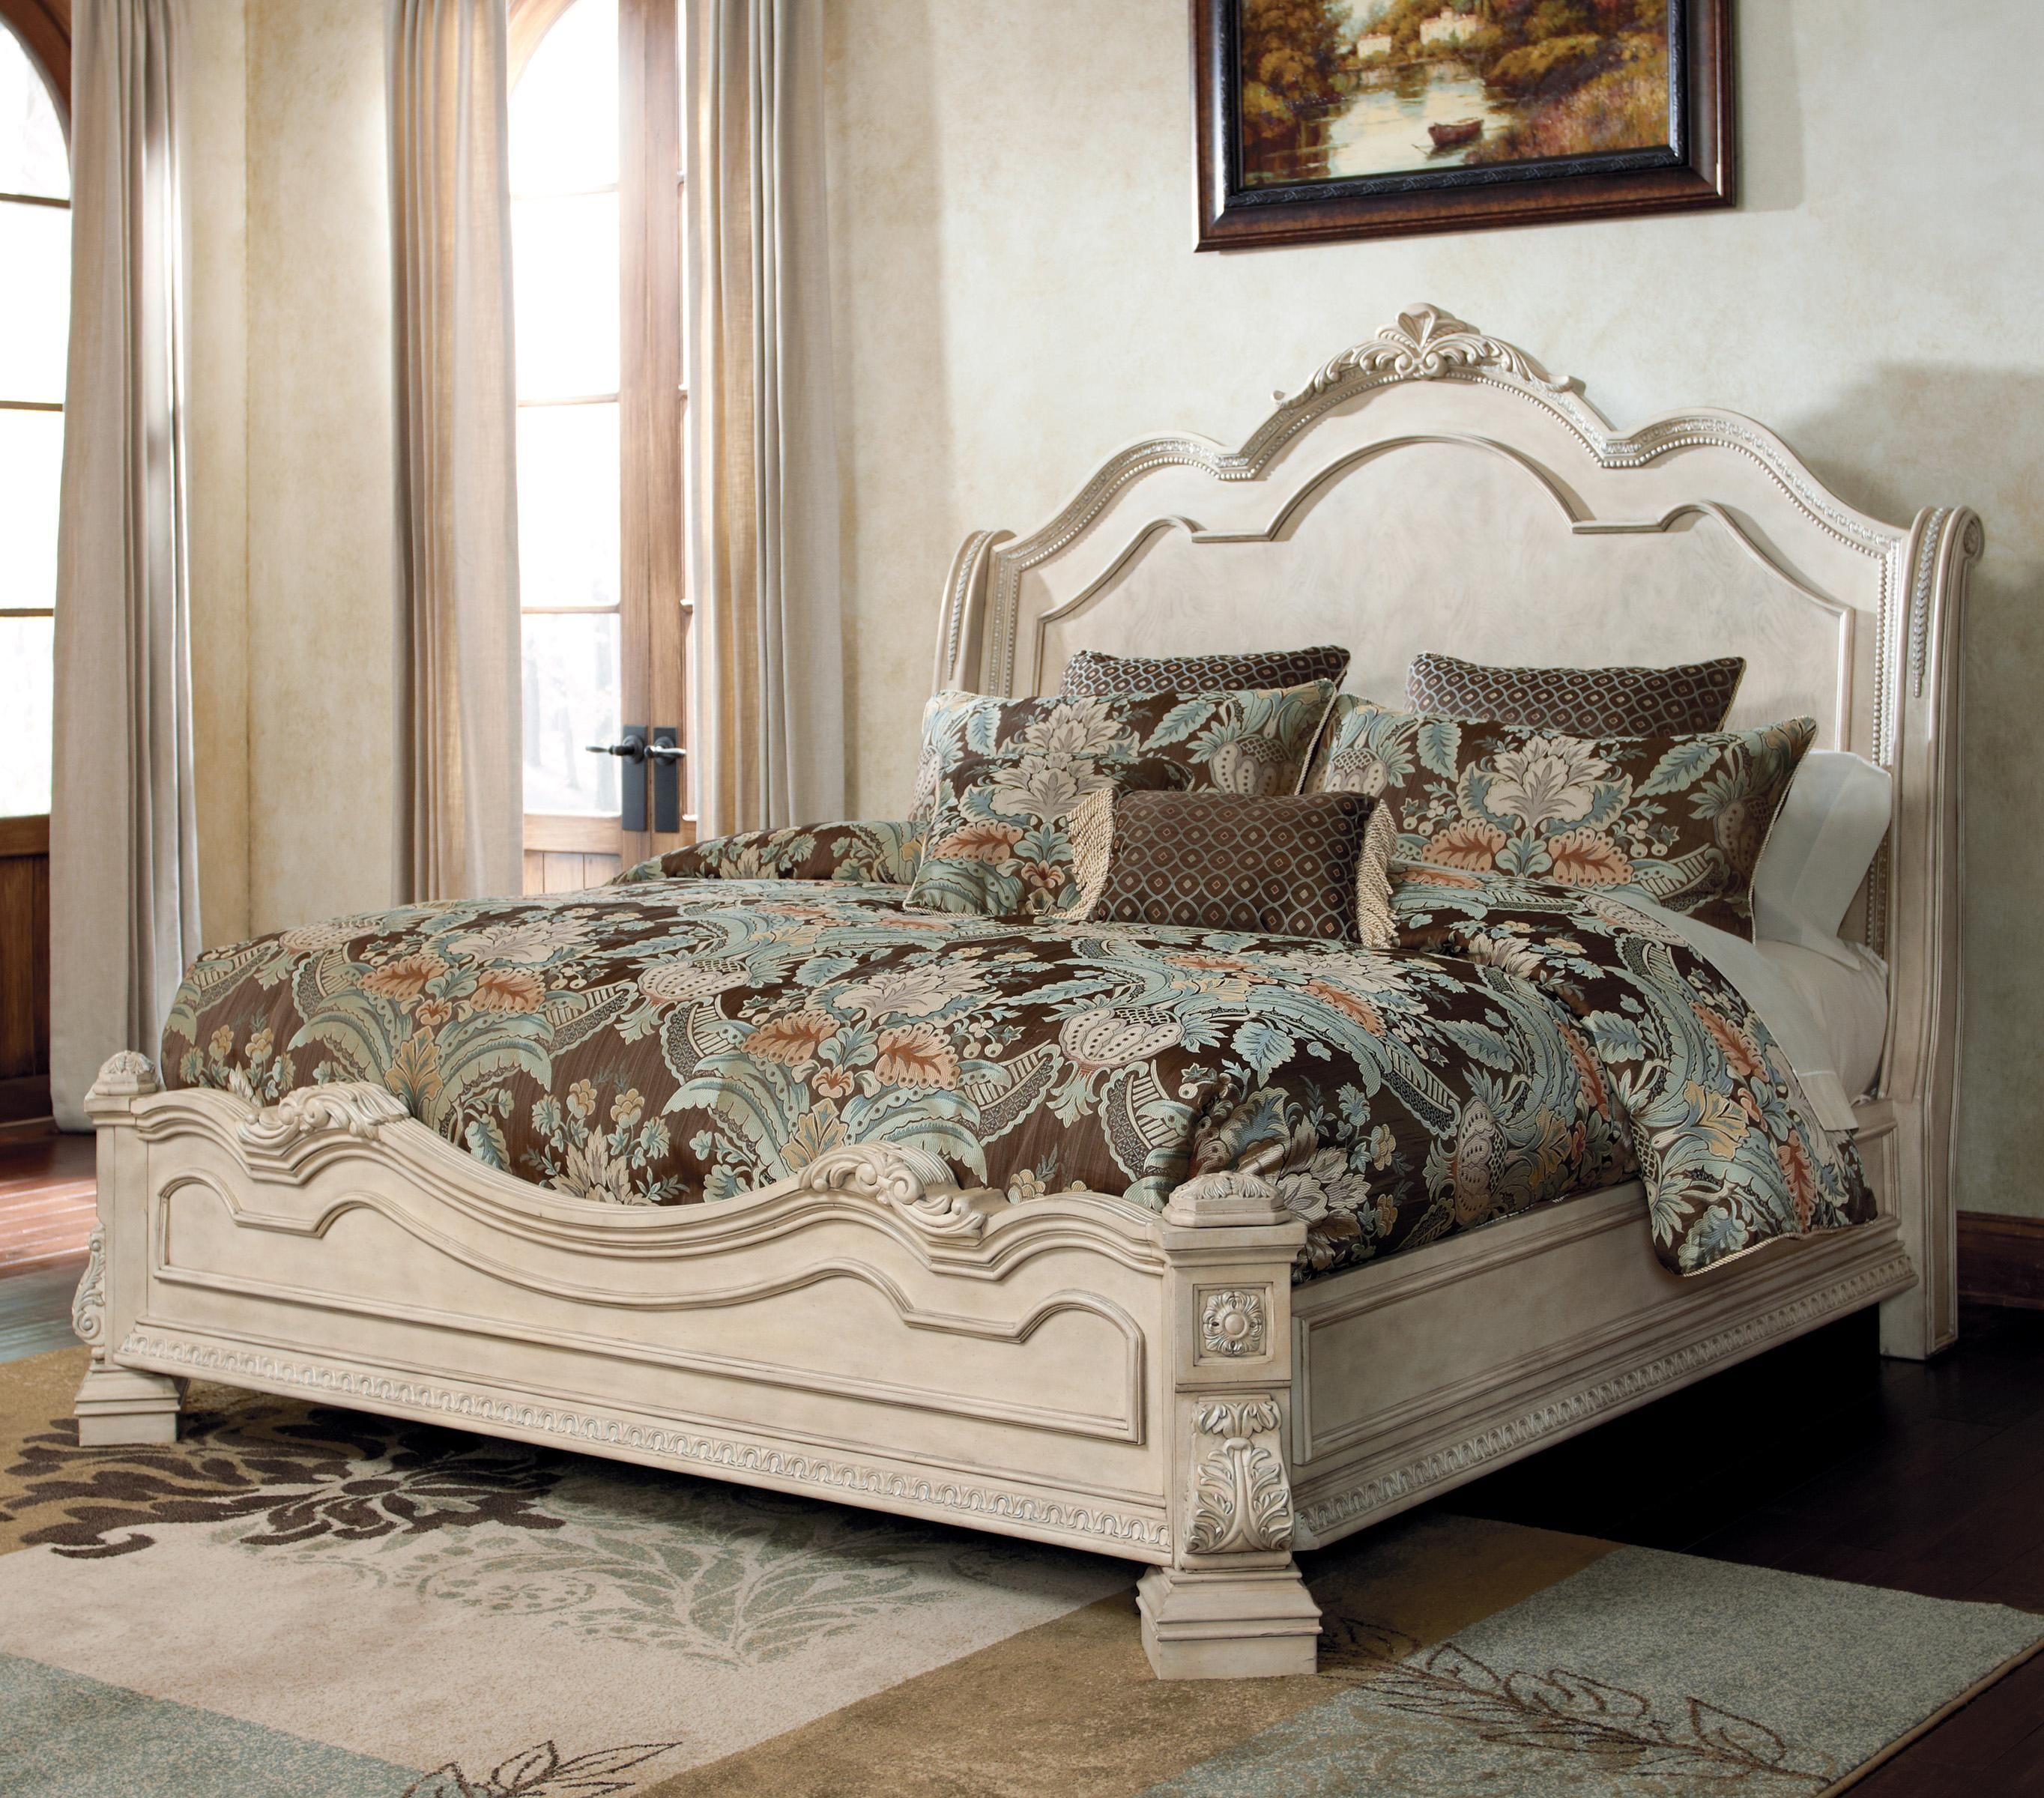 The Ortanique Traditional Queen Bed With Sleigh Headboard